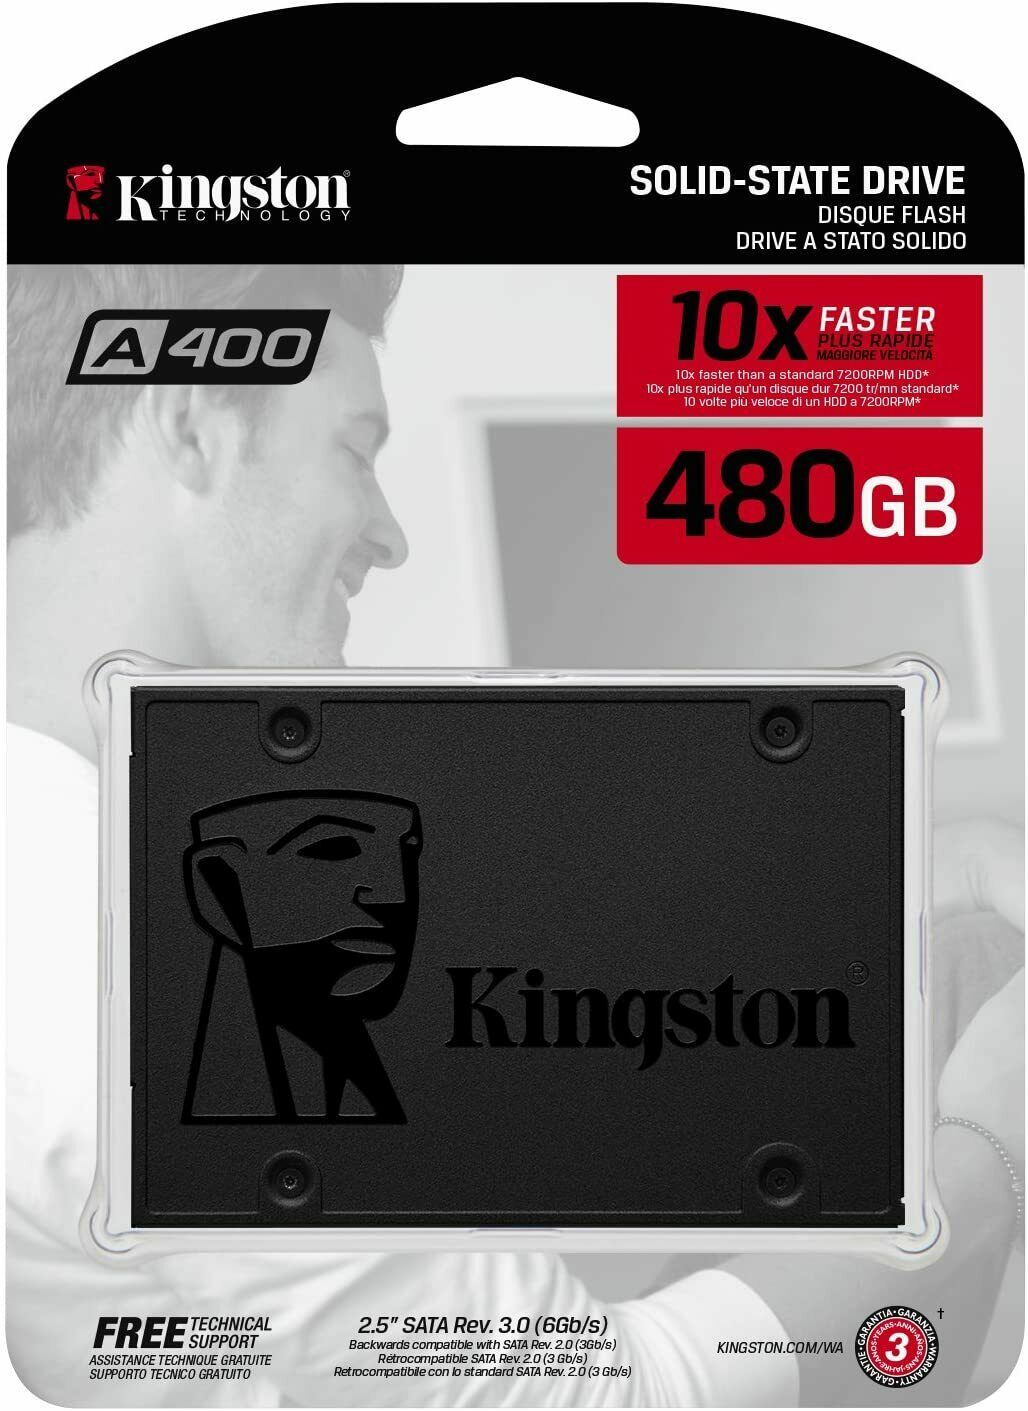 """Kingston SSD 480GB SATA III 2.5"""" Internal Solid State Drive New Sealed. Buy it now for 59.95"""